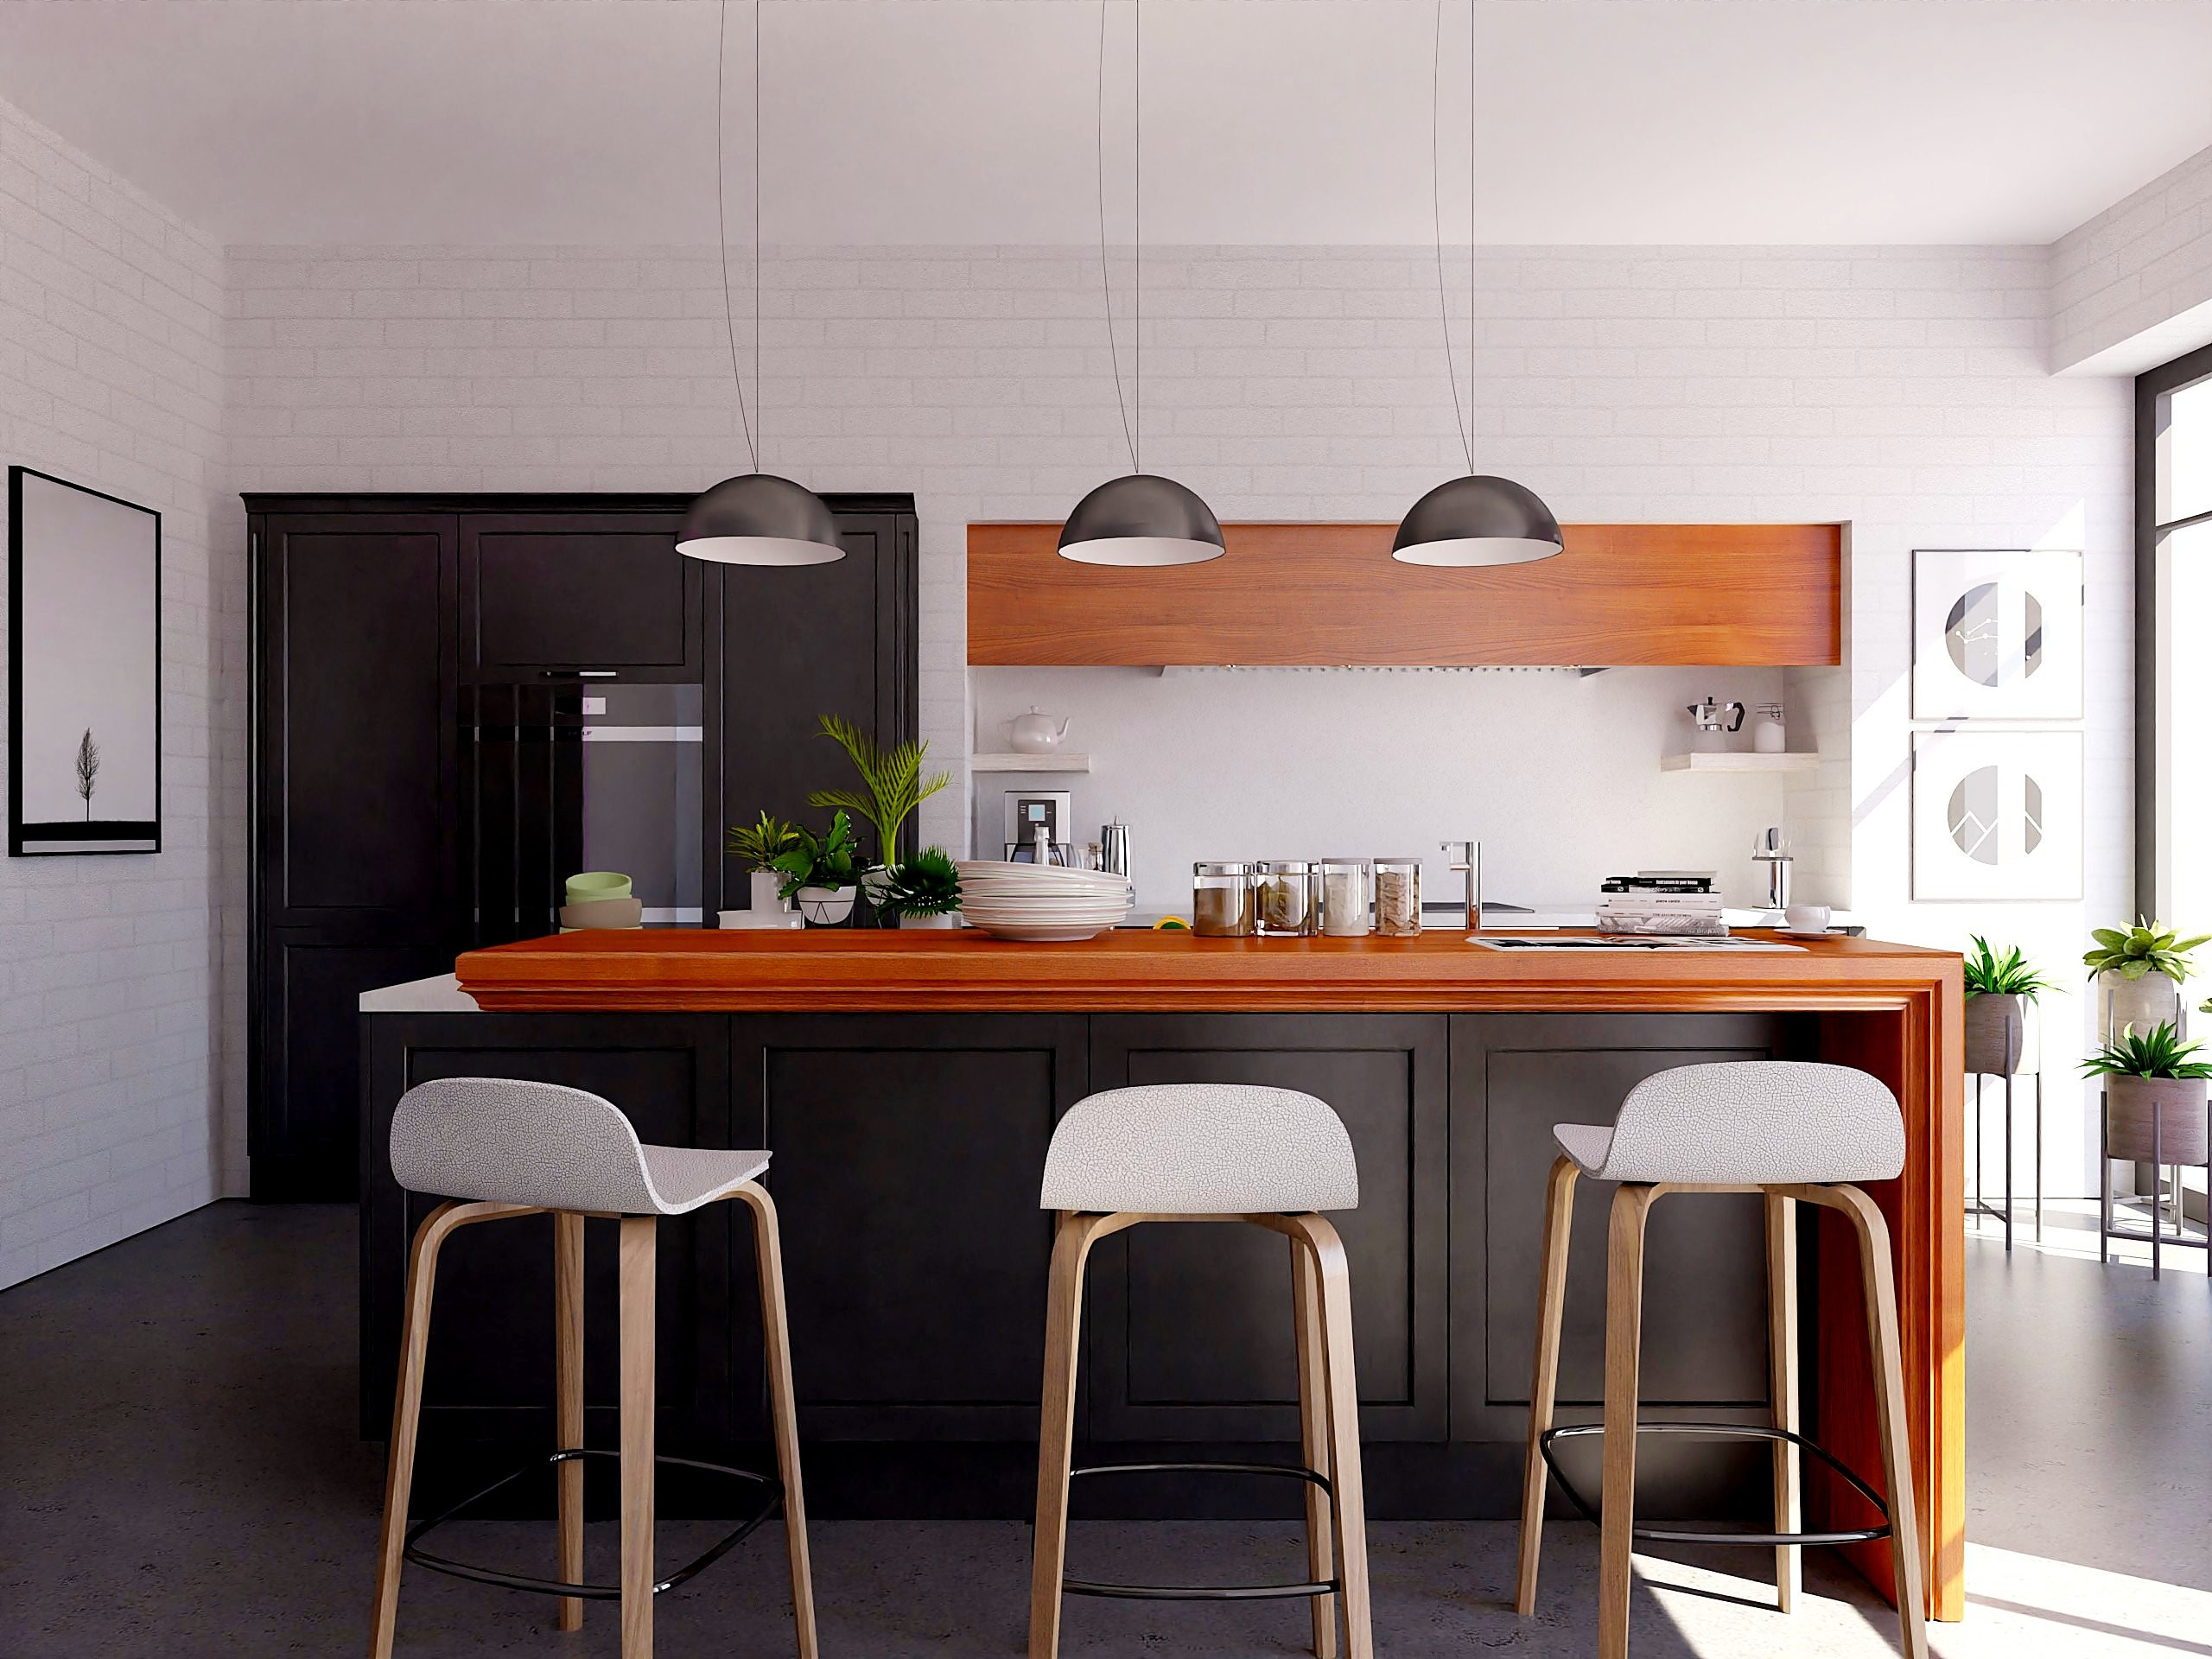 Nice kitchen-ProWalker-PIE.jpg